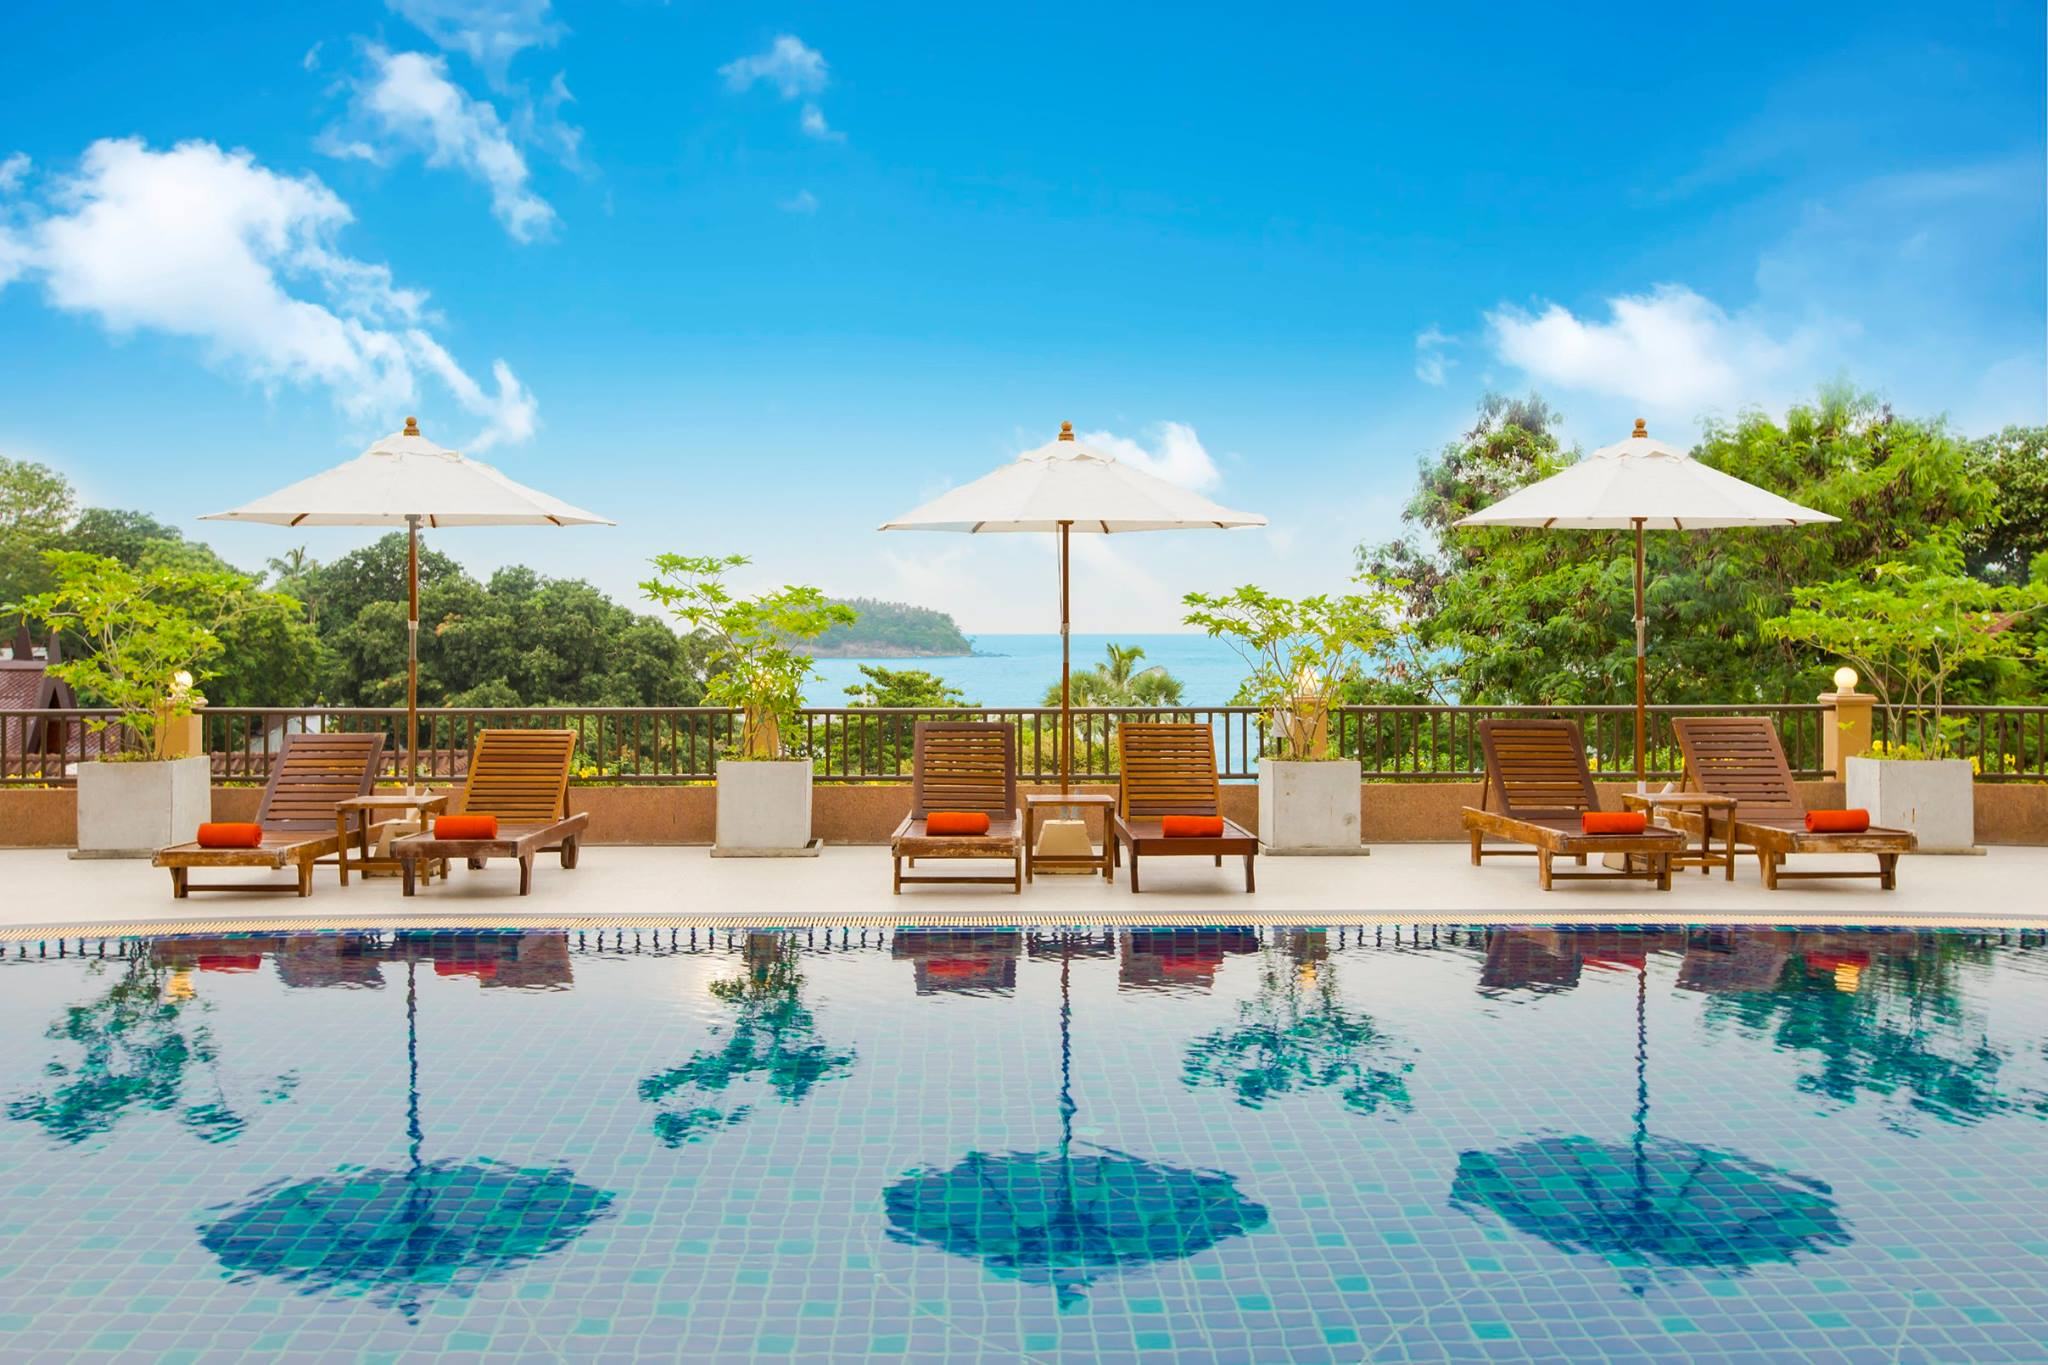 Pool at Chanalai Garden Resort, formally known as the Tropical Garden resort